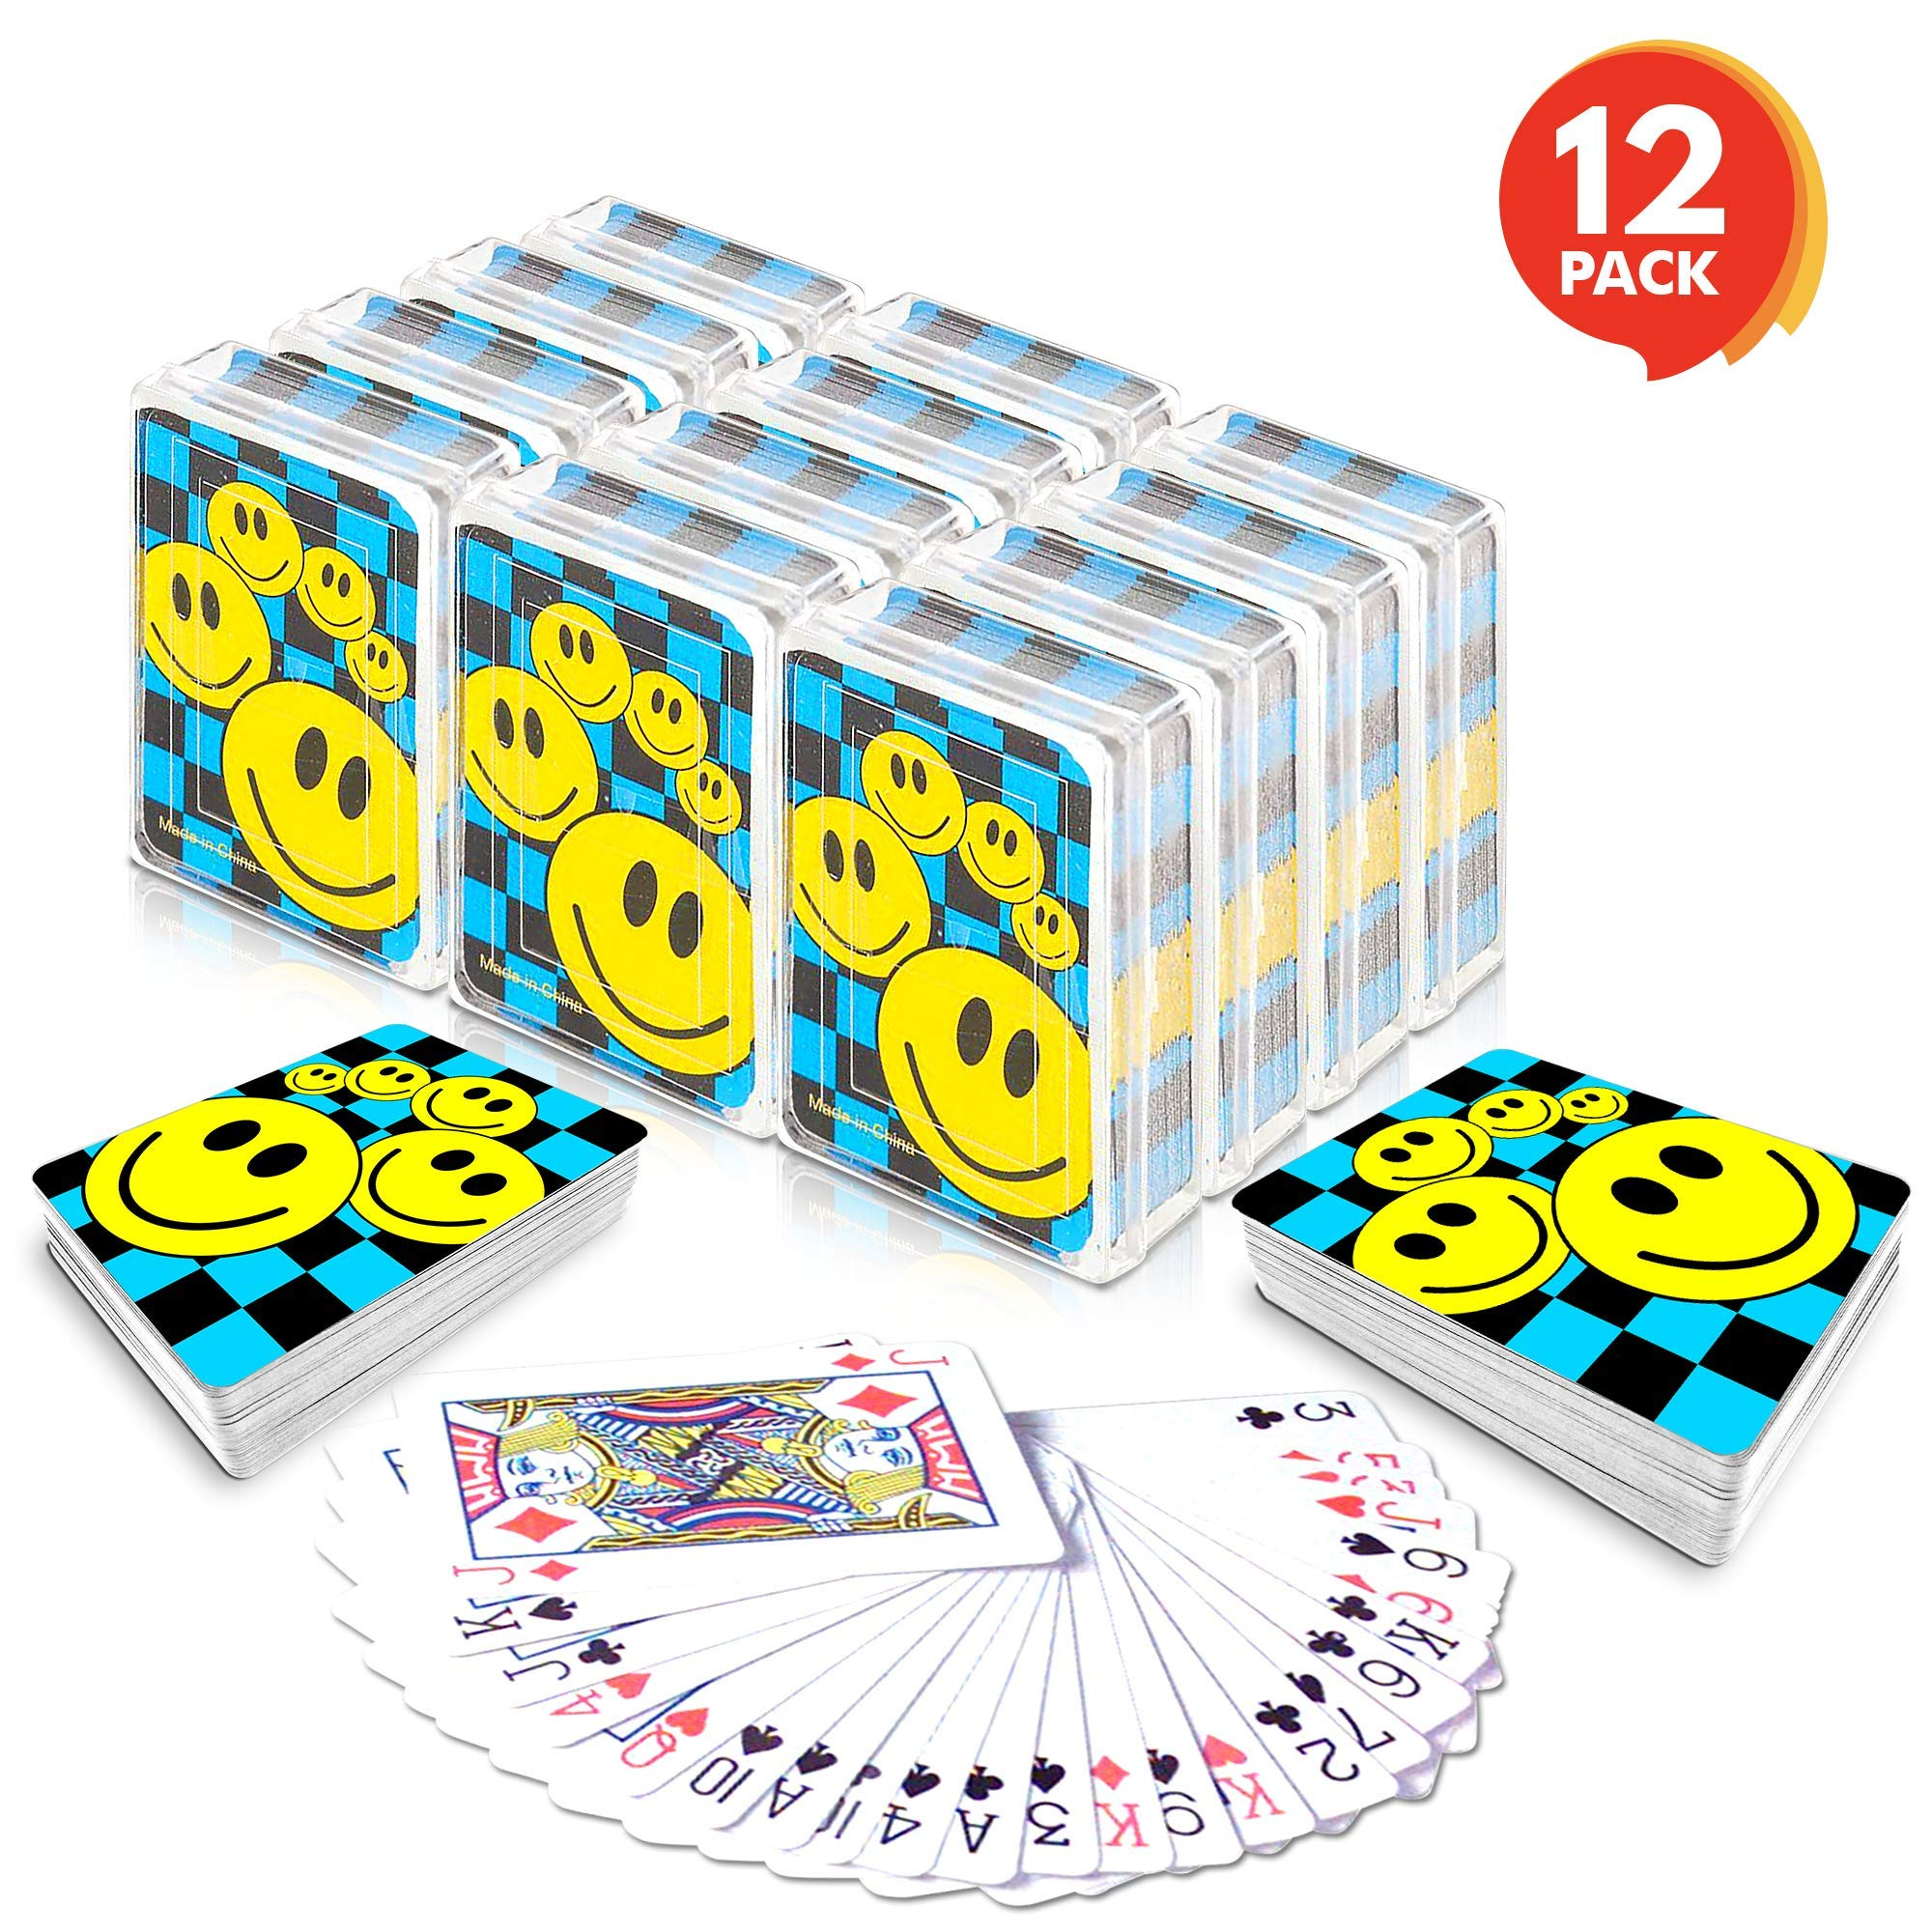 Gamie Mini Smiley Playing Cards Deck - Pack of 12 - 2.5 Inches Tall - Blue Checkerboard Background - Poker-Casino Cards - Carnival Prize, Party Favor and Gift Idea for Kids Ages 3+ by Gamie